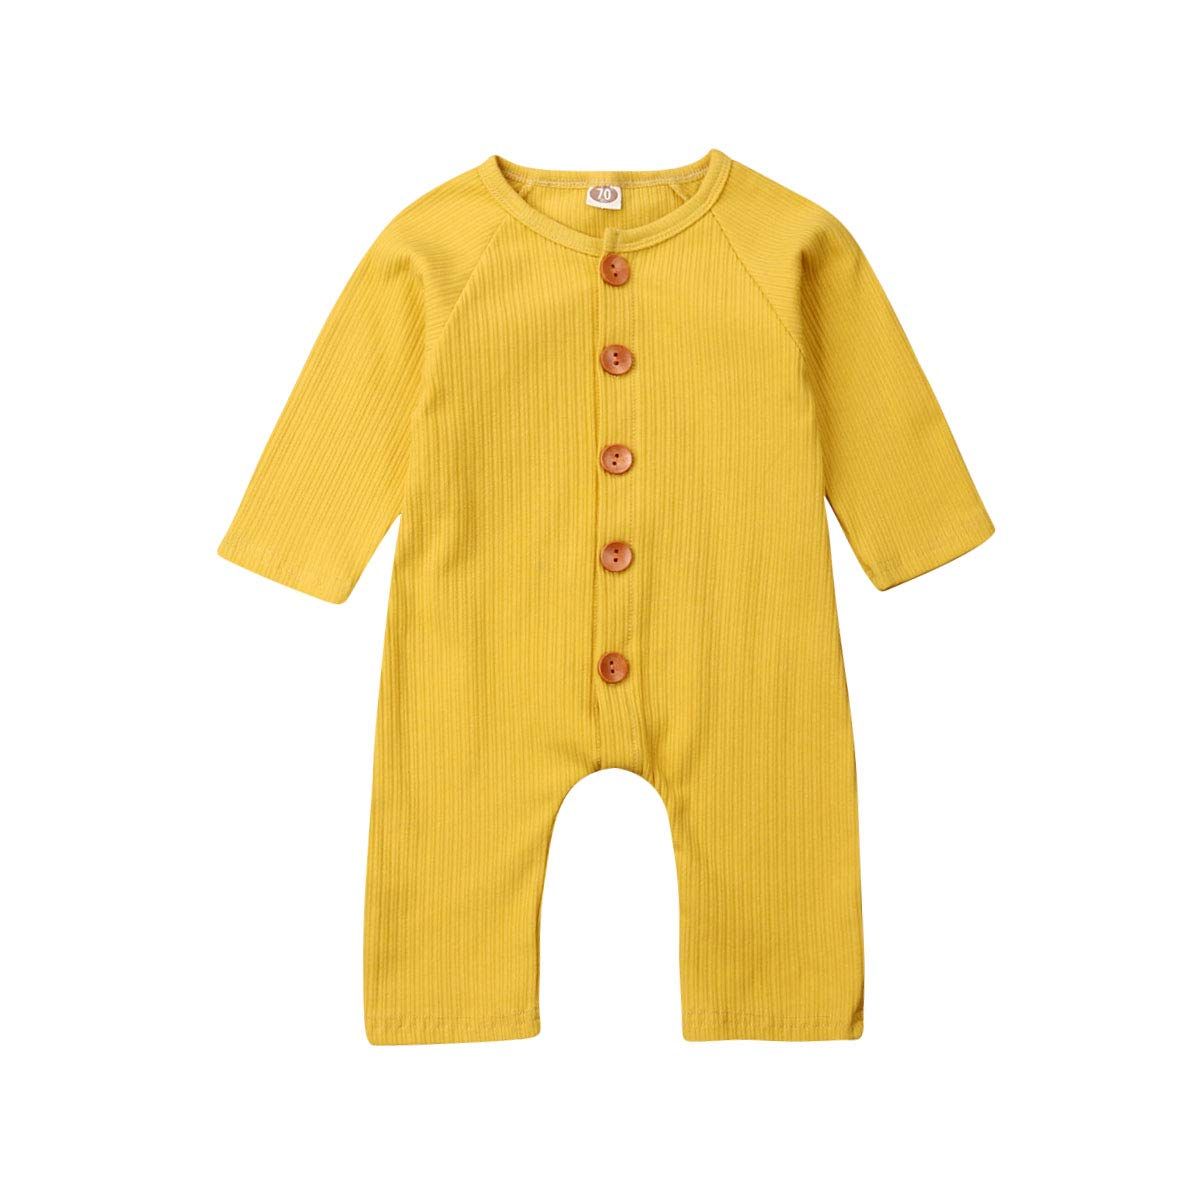 xueliangdedianpu Unisex Baby Summer Romper Sleeveless Button One-Piece Solid Color Jumpsuit Bodysuit for Infant Toddlers